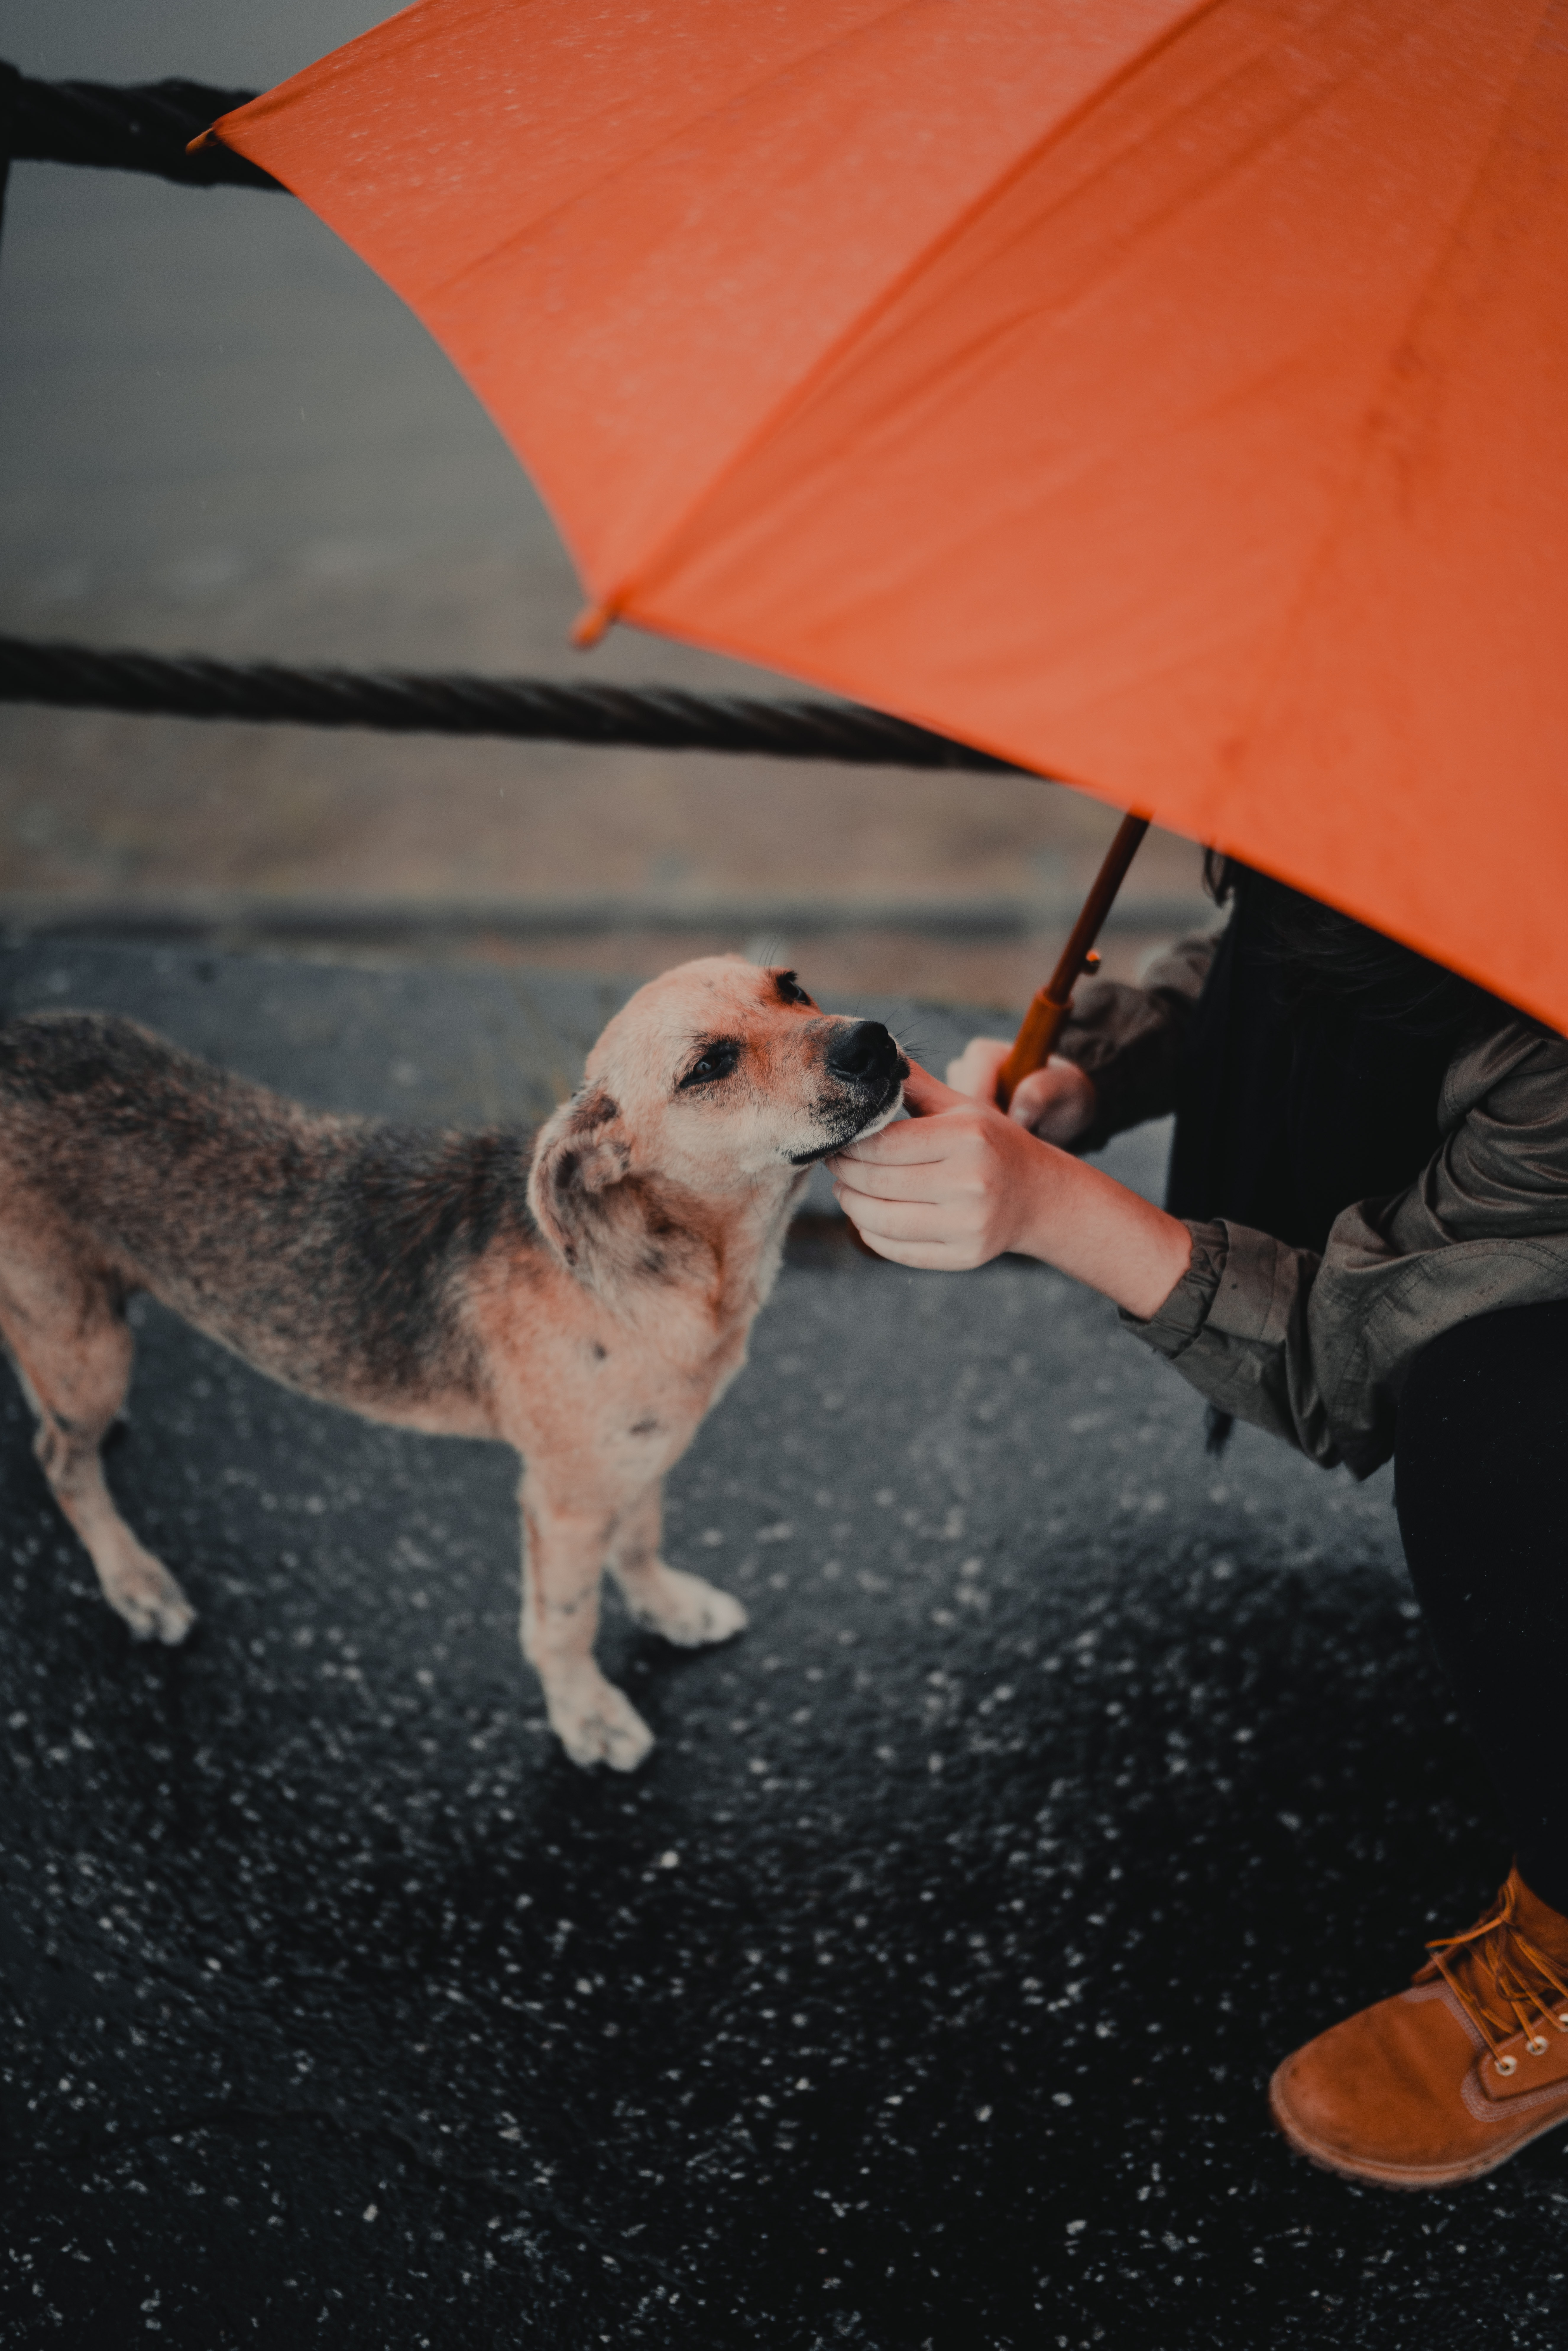 104380 download wallpaper Miscellanea, Miscellaneous, Dog, Human, Person, Umbrella, Pet, Street screensavers and pictures for free